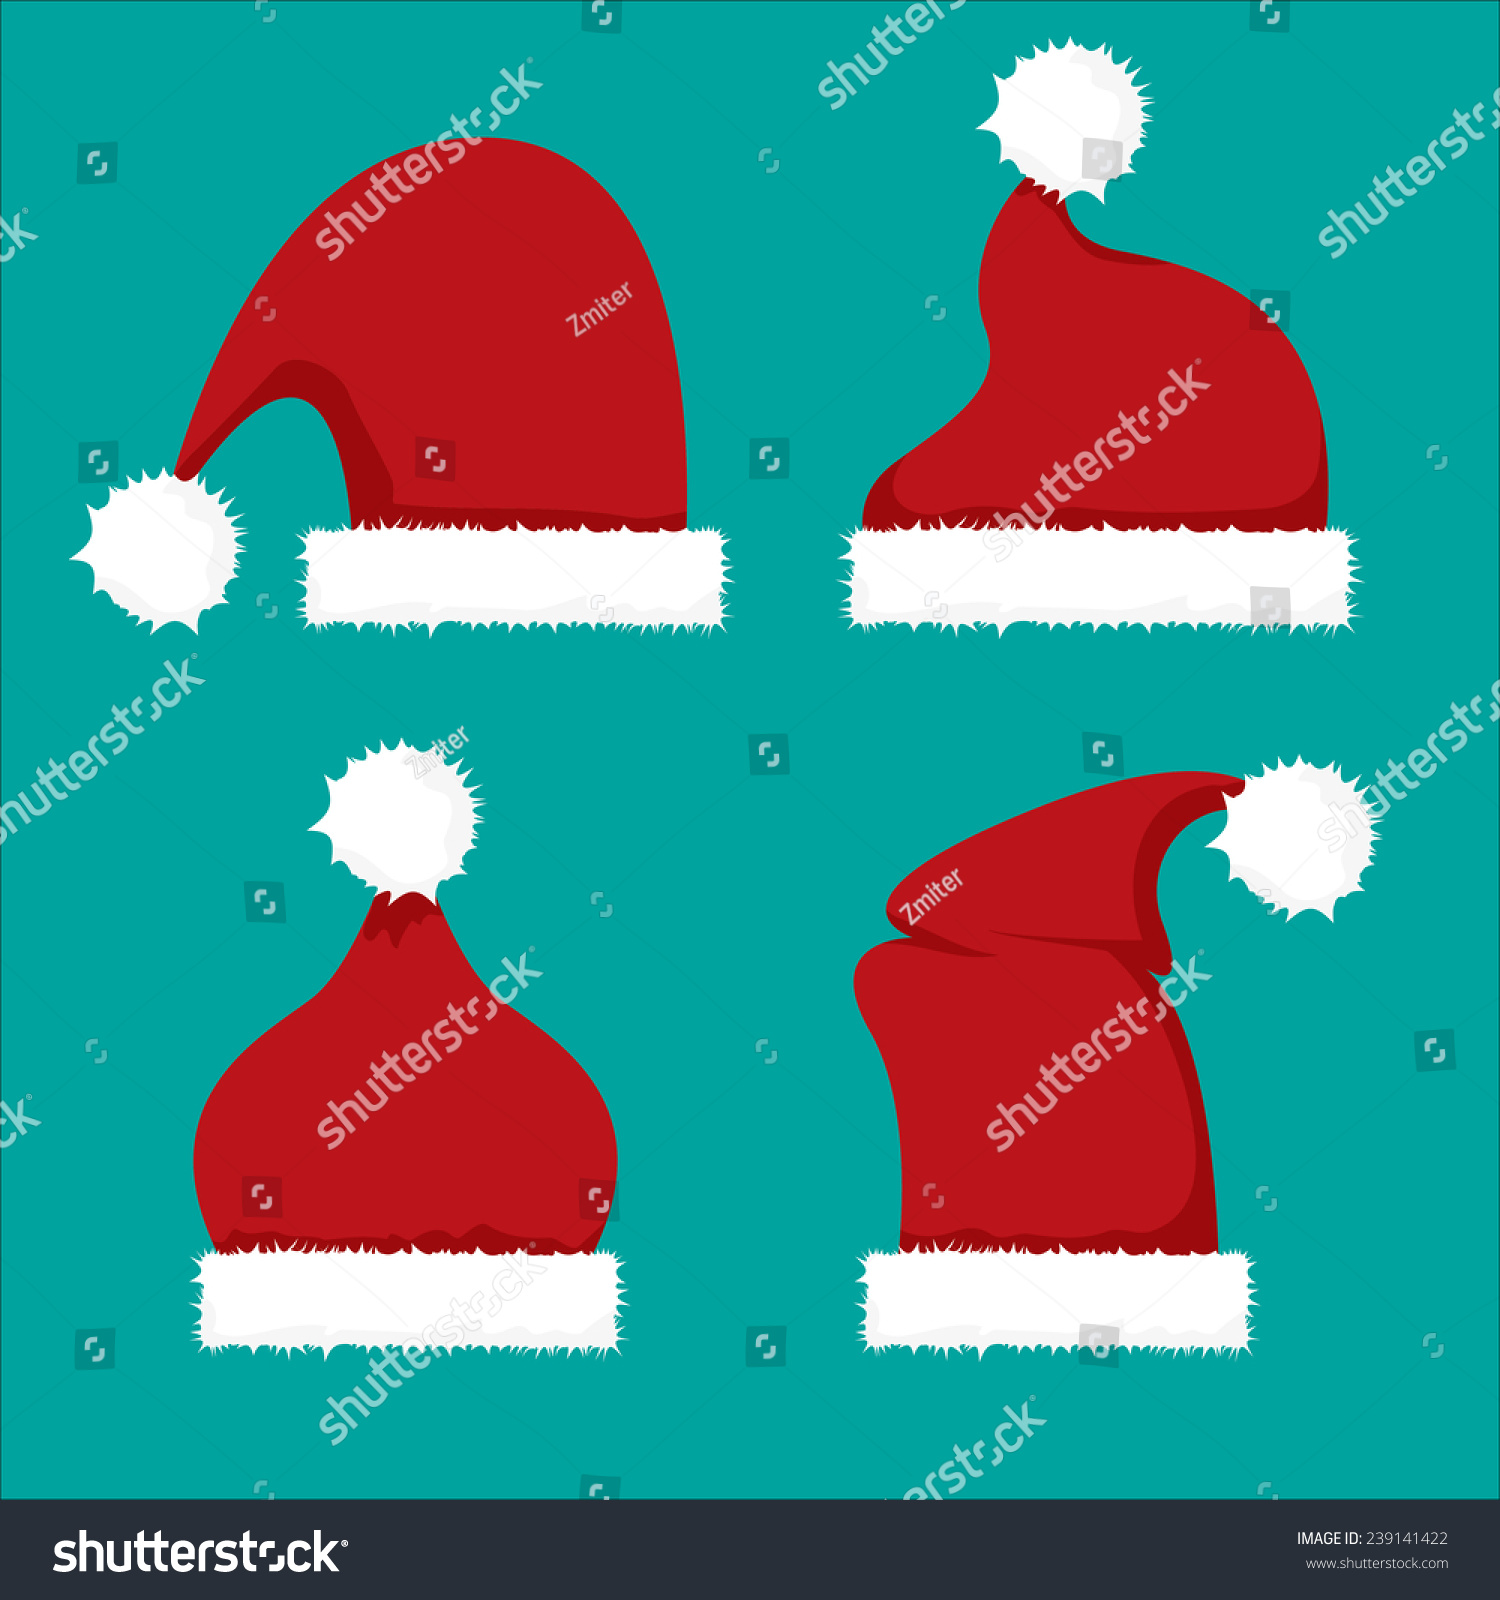 bae3808a392e3 Red Santa Hat Flat Icon Vector Stock Vector (Royalty Free) 239141422 ...